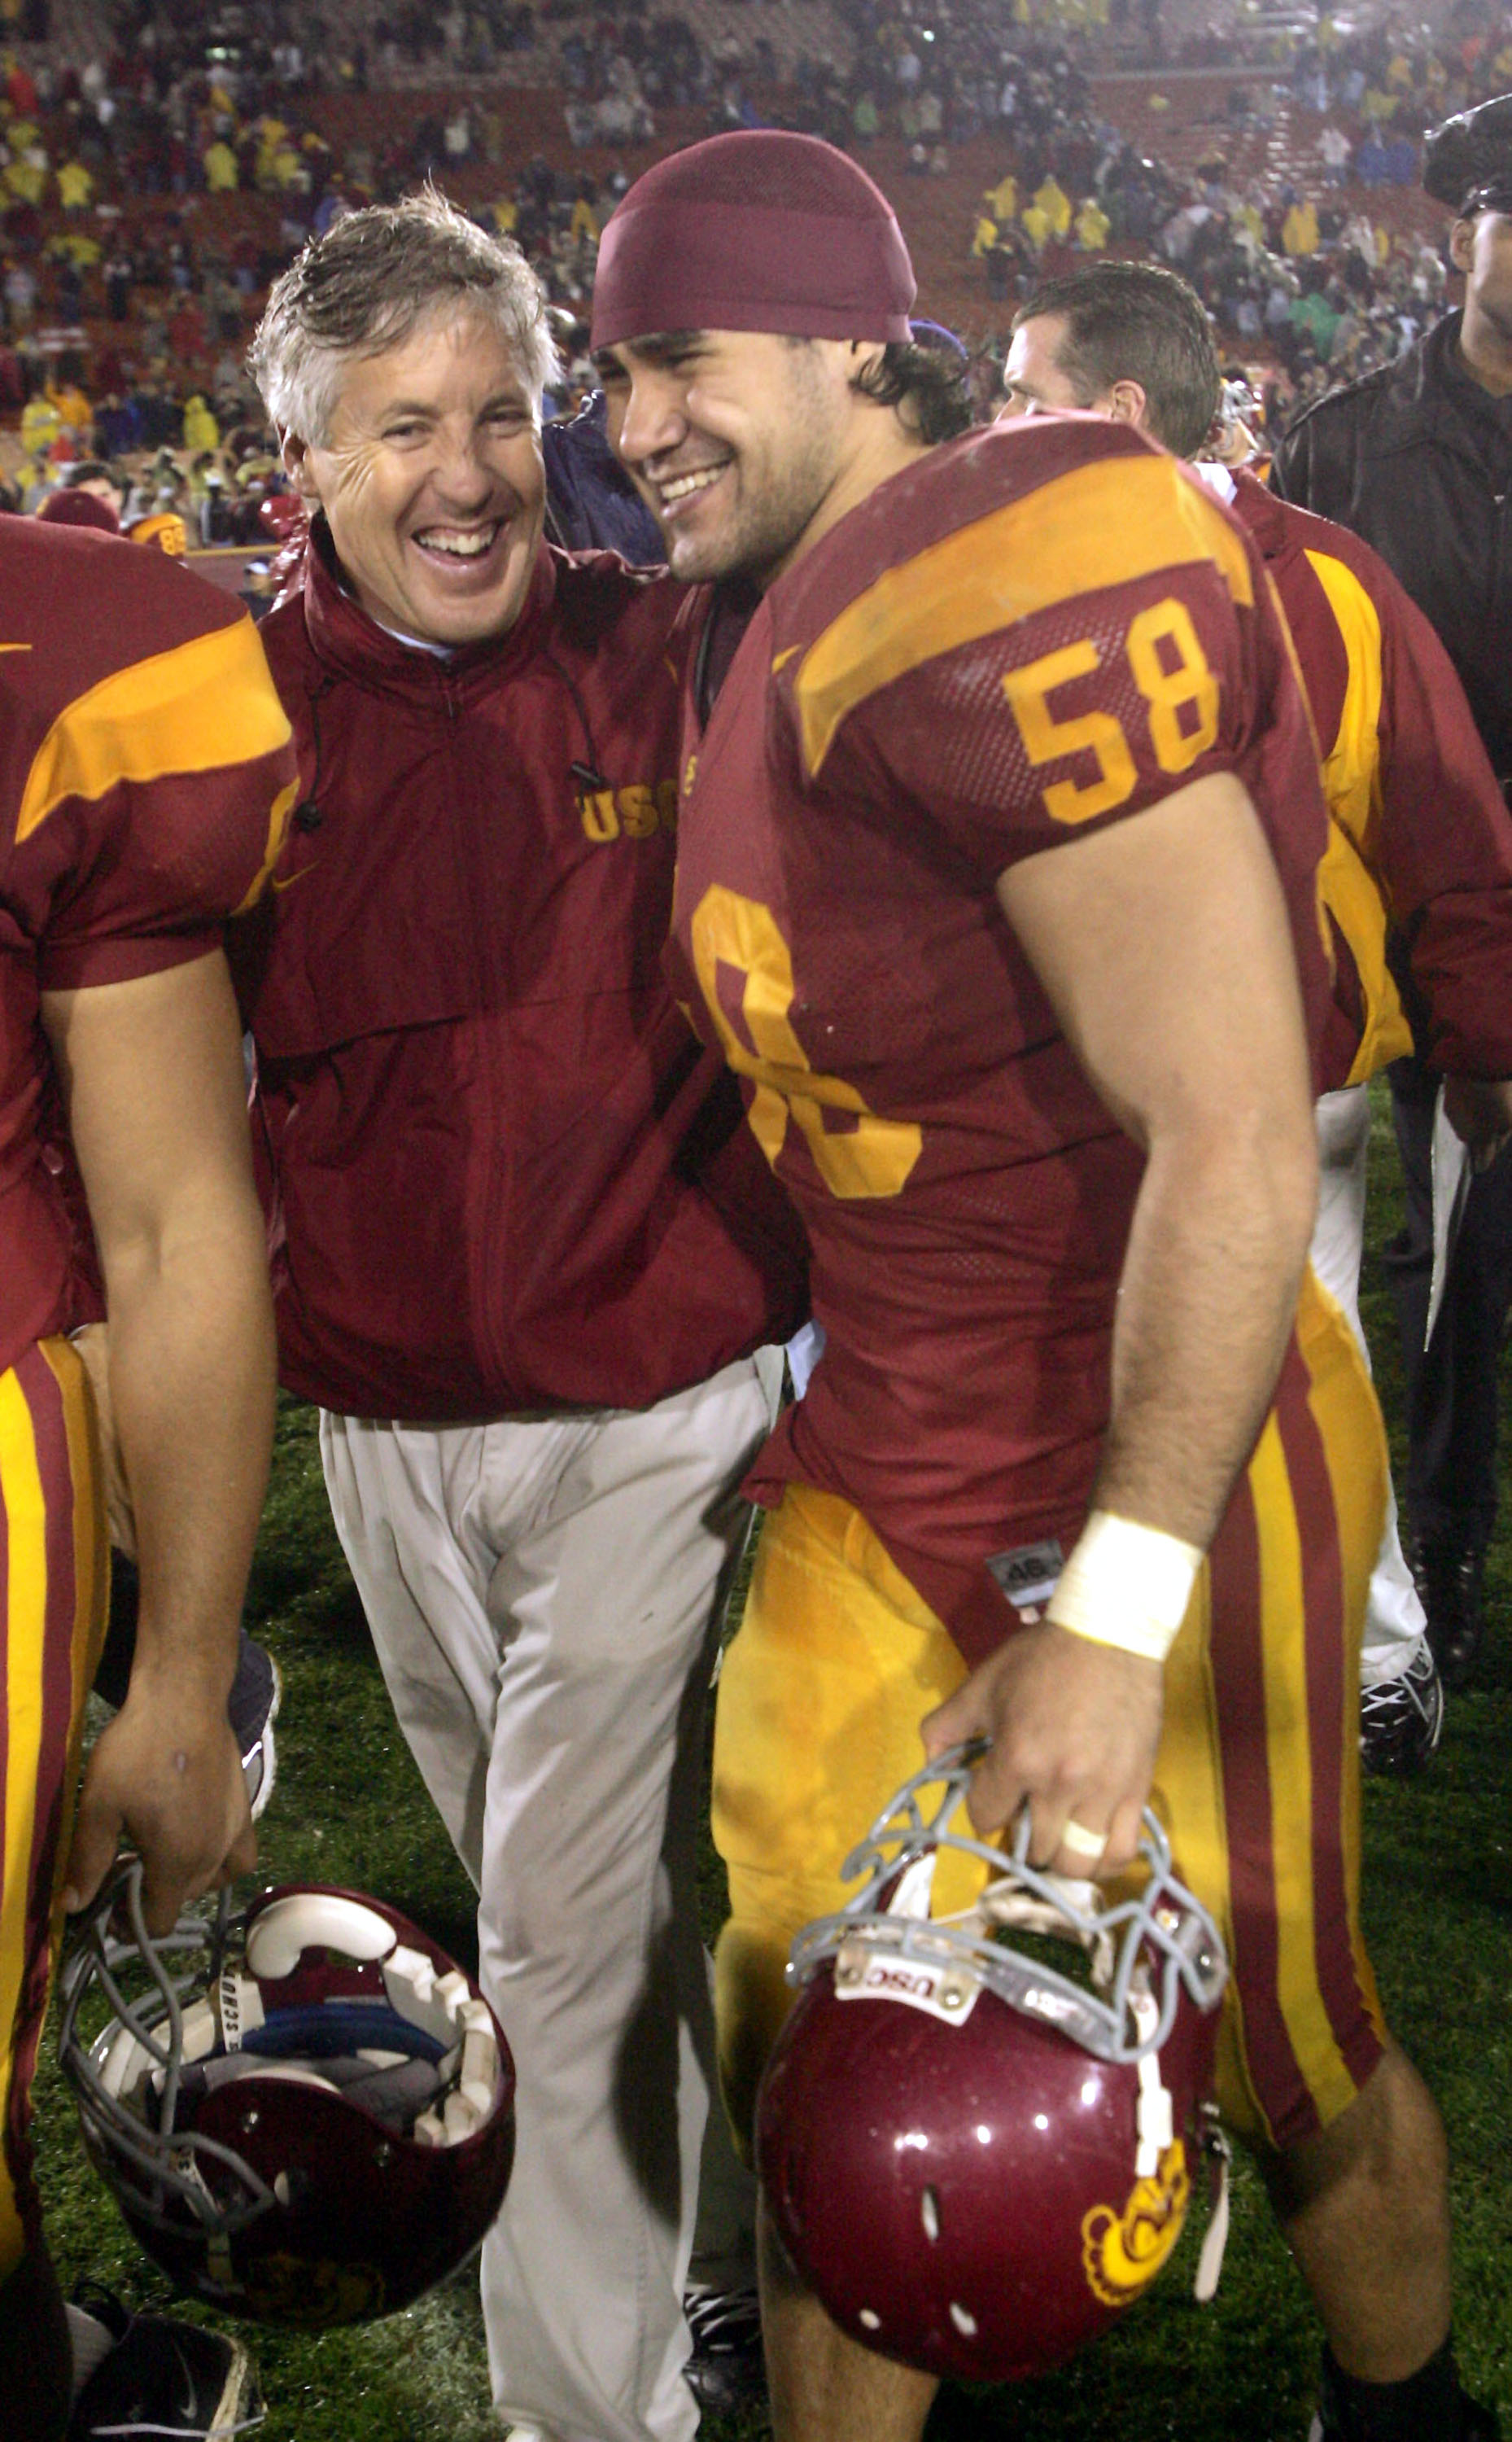 Usc S Top 20 Members Of The Pete Carroll Era 2001 2009 Bleacher Report Latest News Videos And Highlights